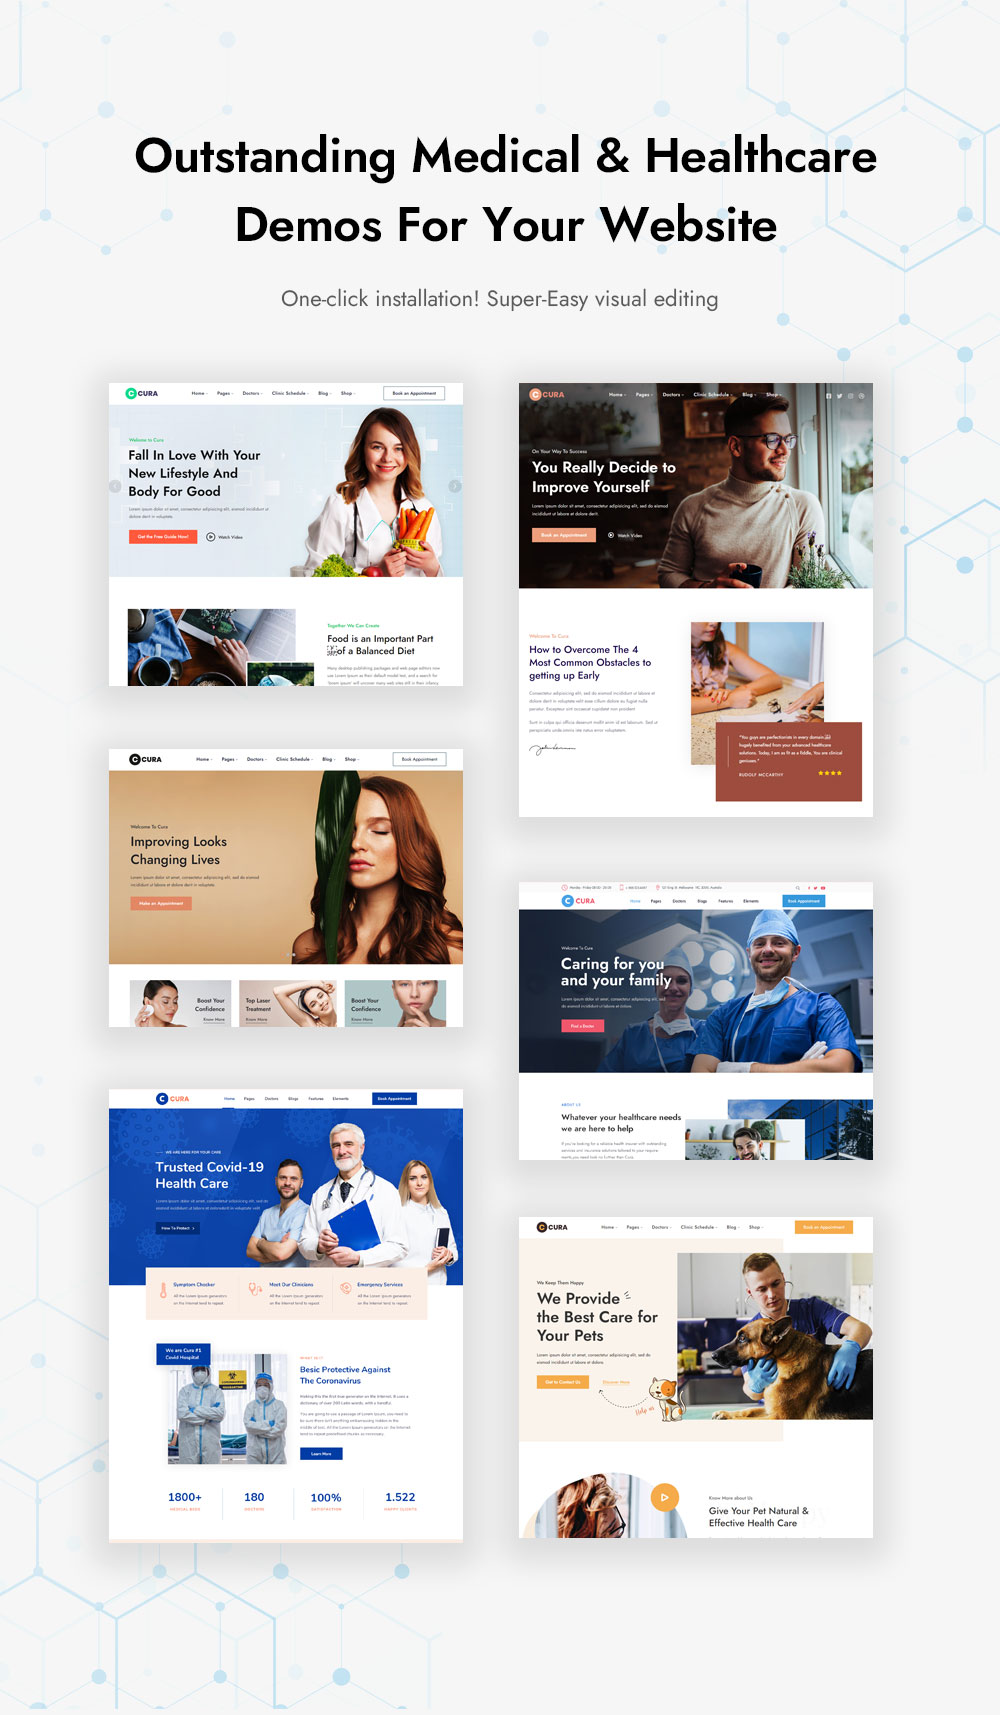 Outstanding Medical & Healthcare Demos For Your Website